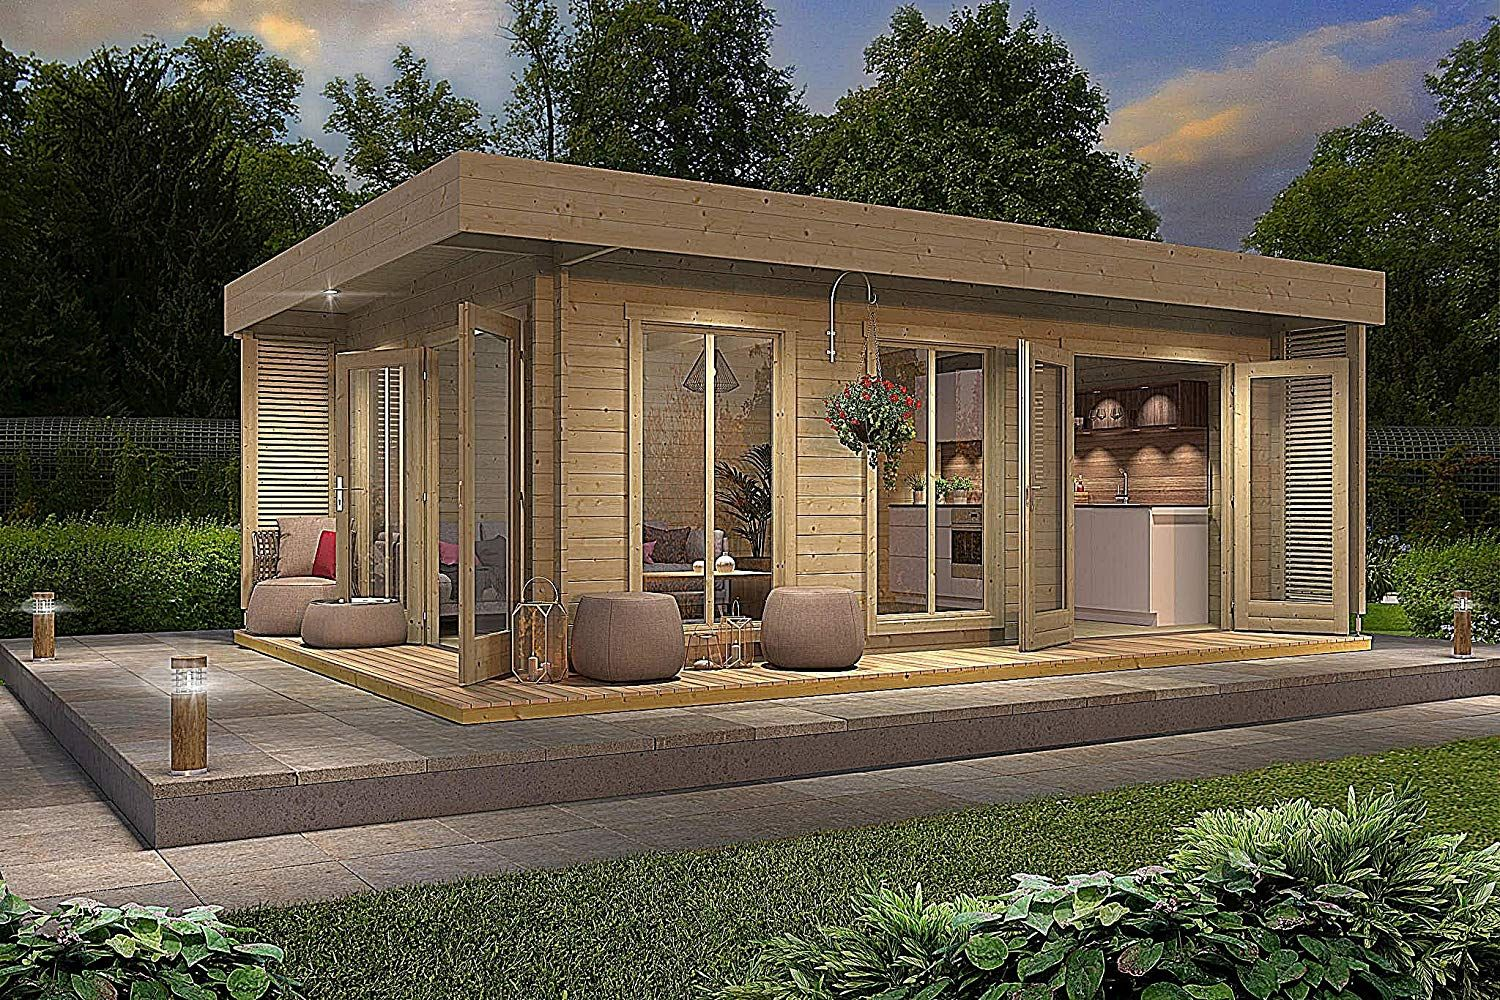 Amazon Is Selling An Allwood Tiny Home Kit That Lets You Build A Personal 'Resort'